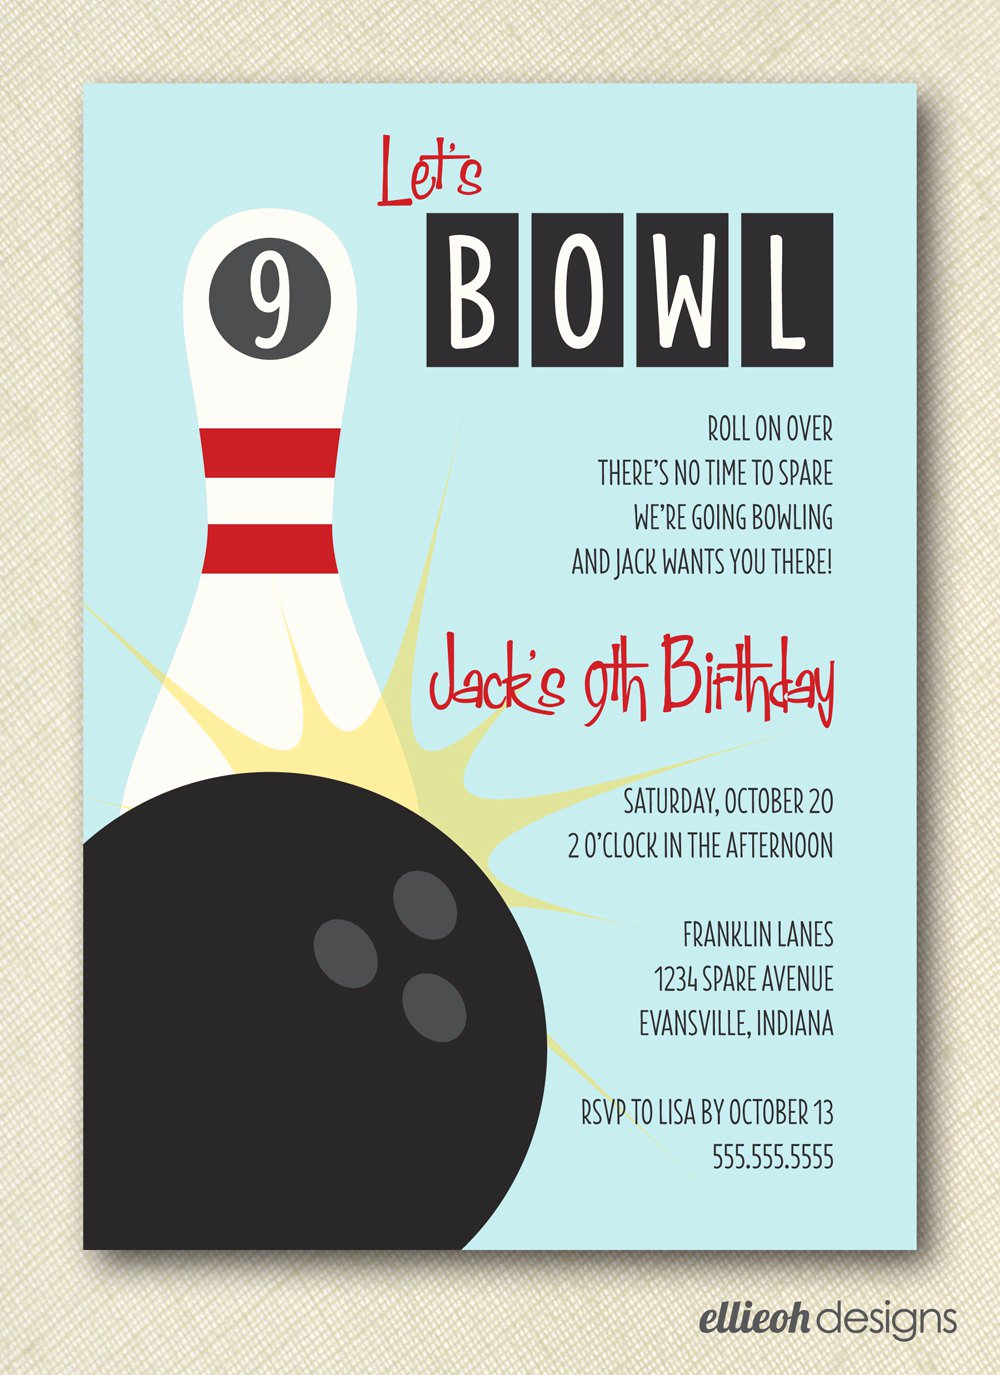 Bowling Party Invitation Template Beautiful Free Printable Bowling Party Invitation Templates